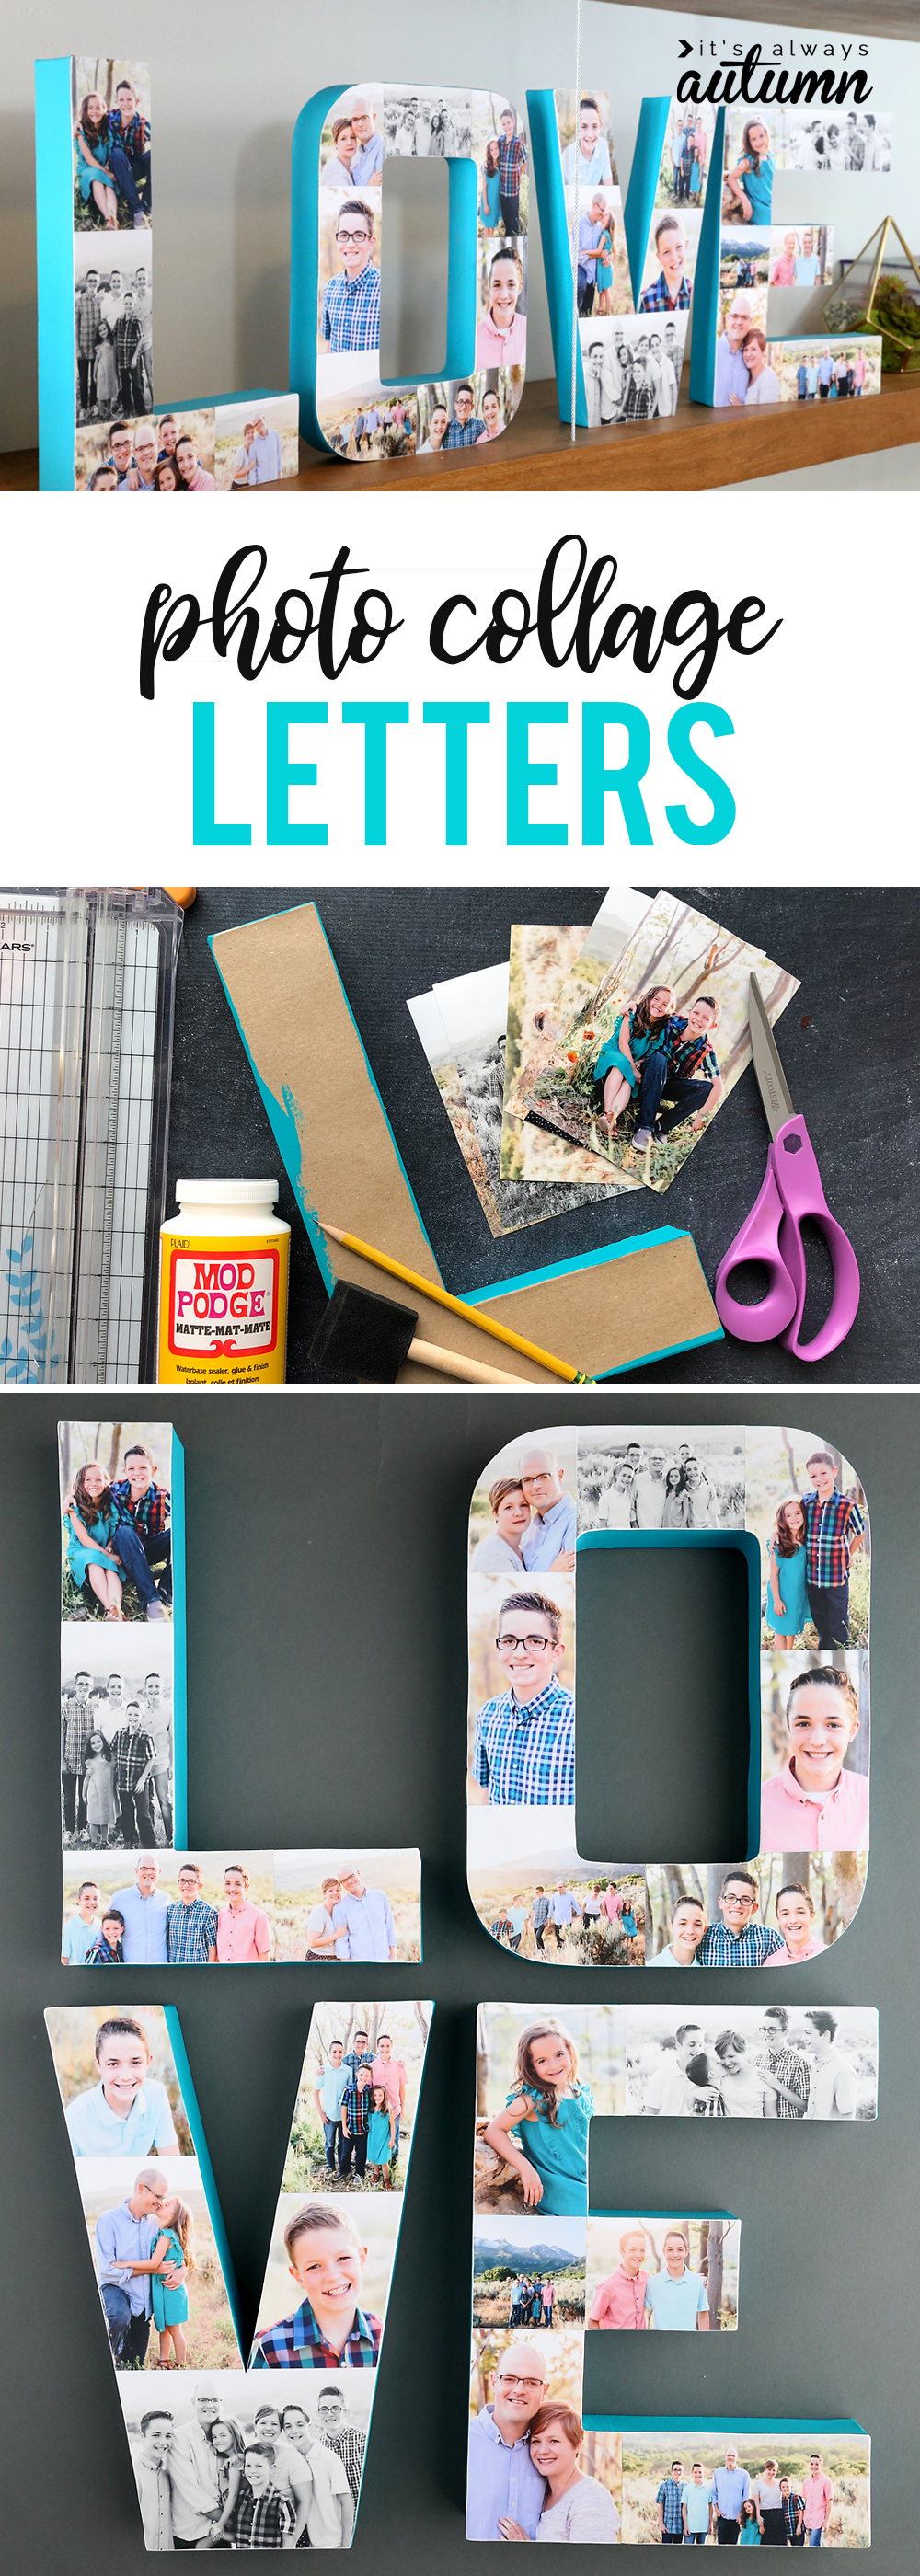 Collage: paper mache letters covered with photos, supplies for making photo letters